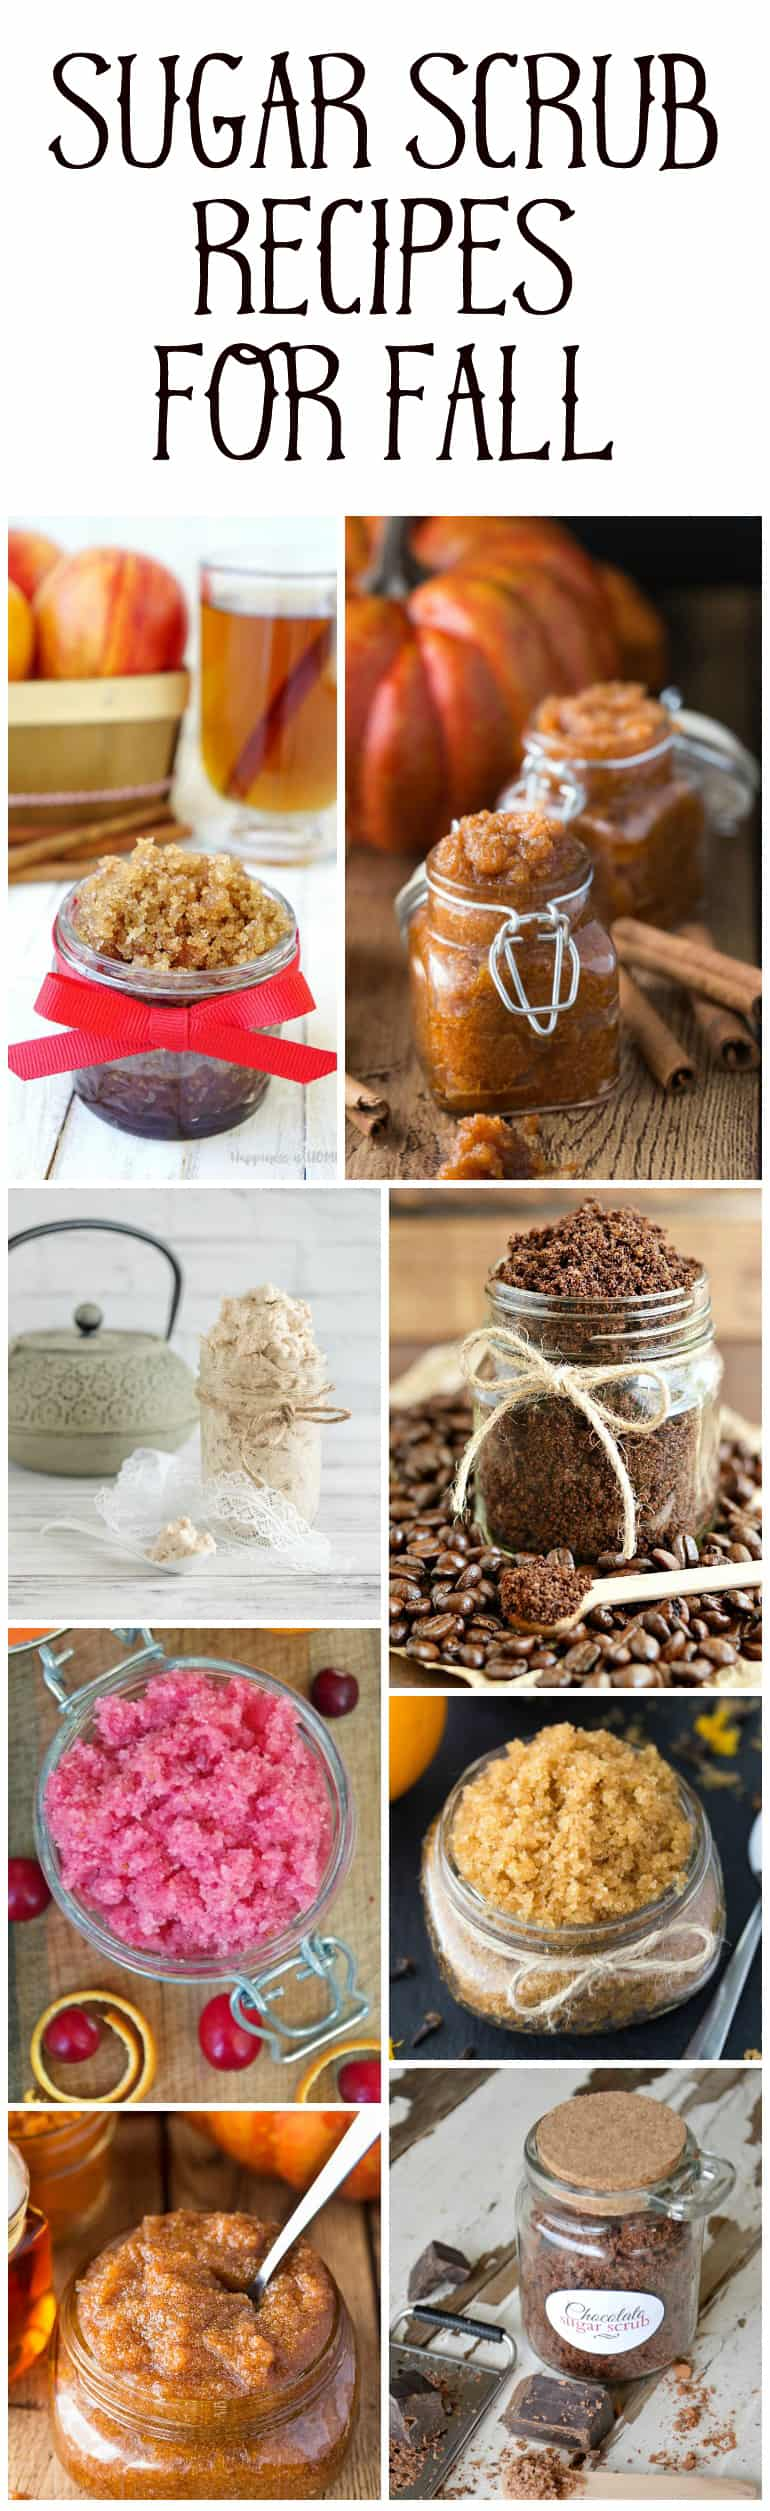 sugar scrub recipes for fall roundup